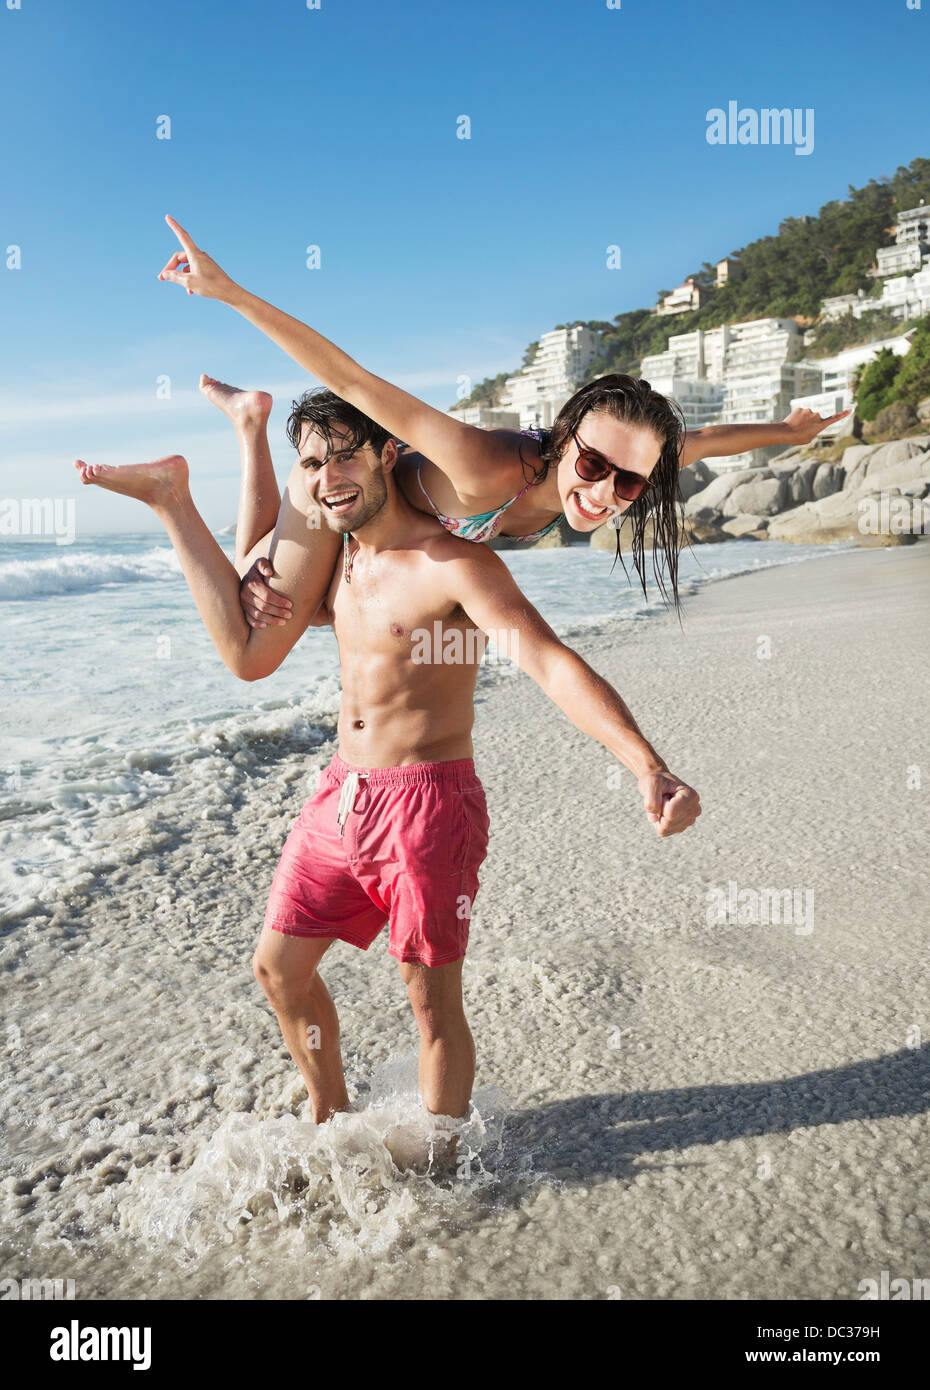 Portrait of happy man lifting woman on beach - Stock Image